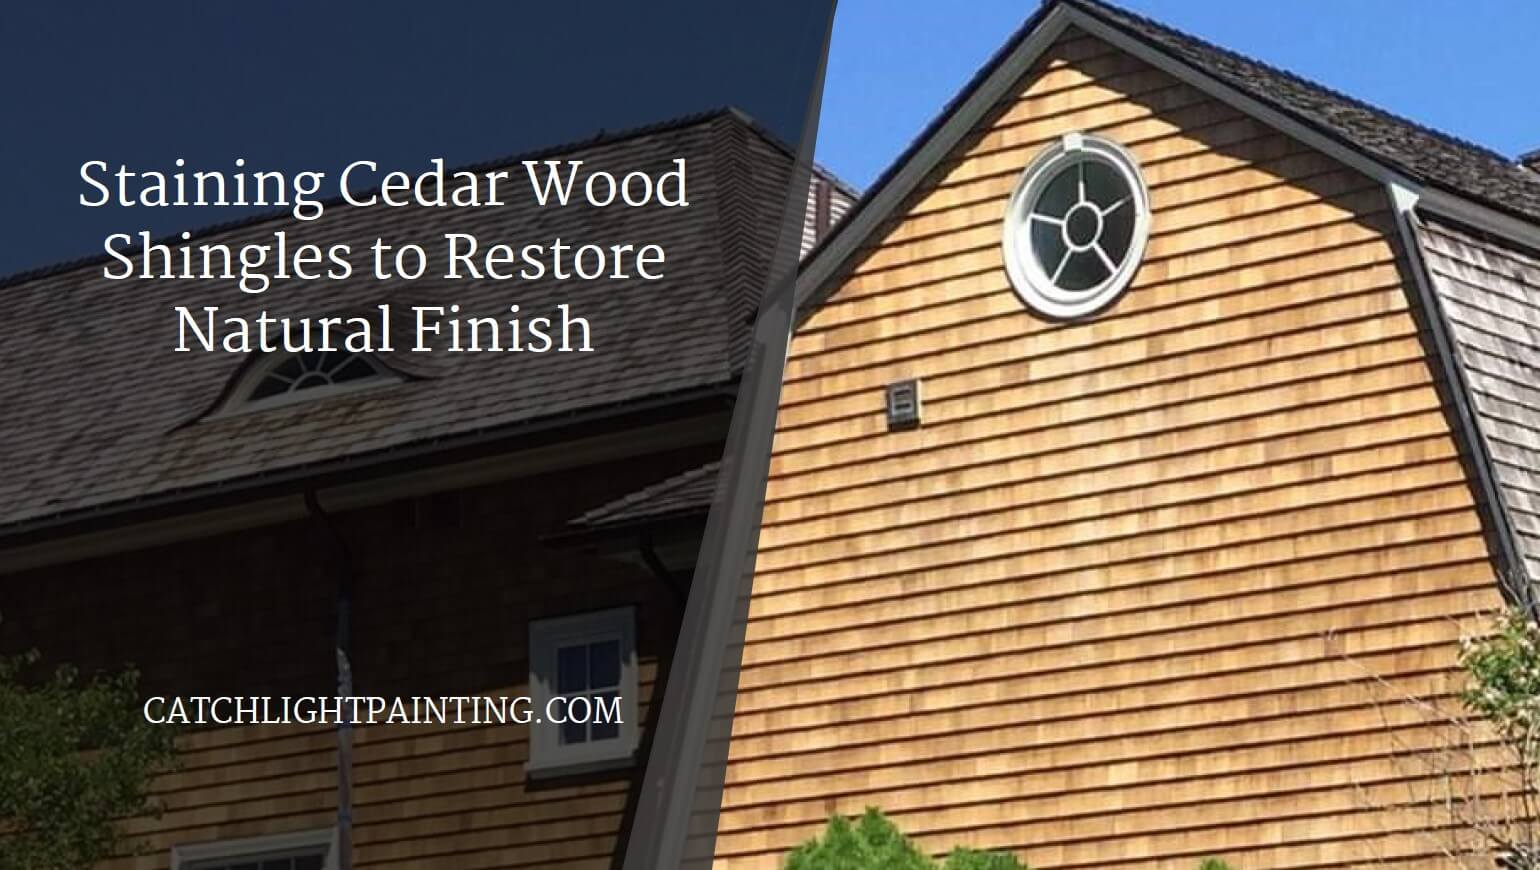 Cedar wood shingles characterize this waterfront home in Gloucester, MA.